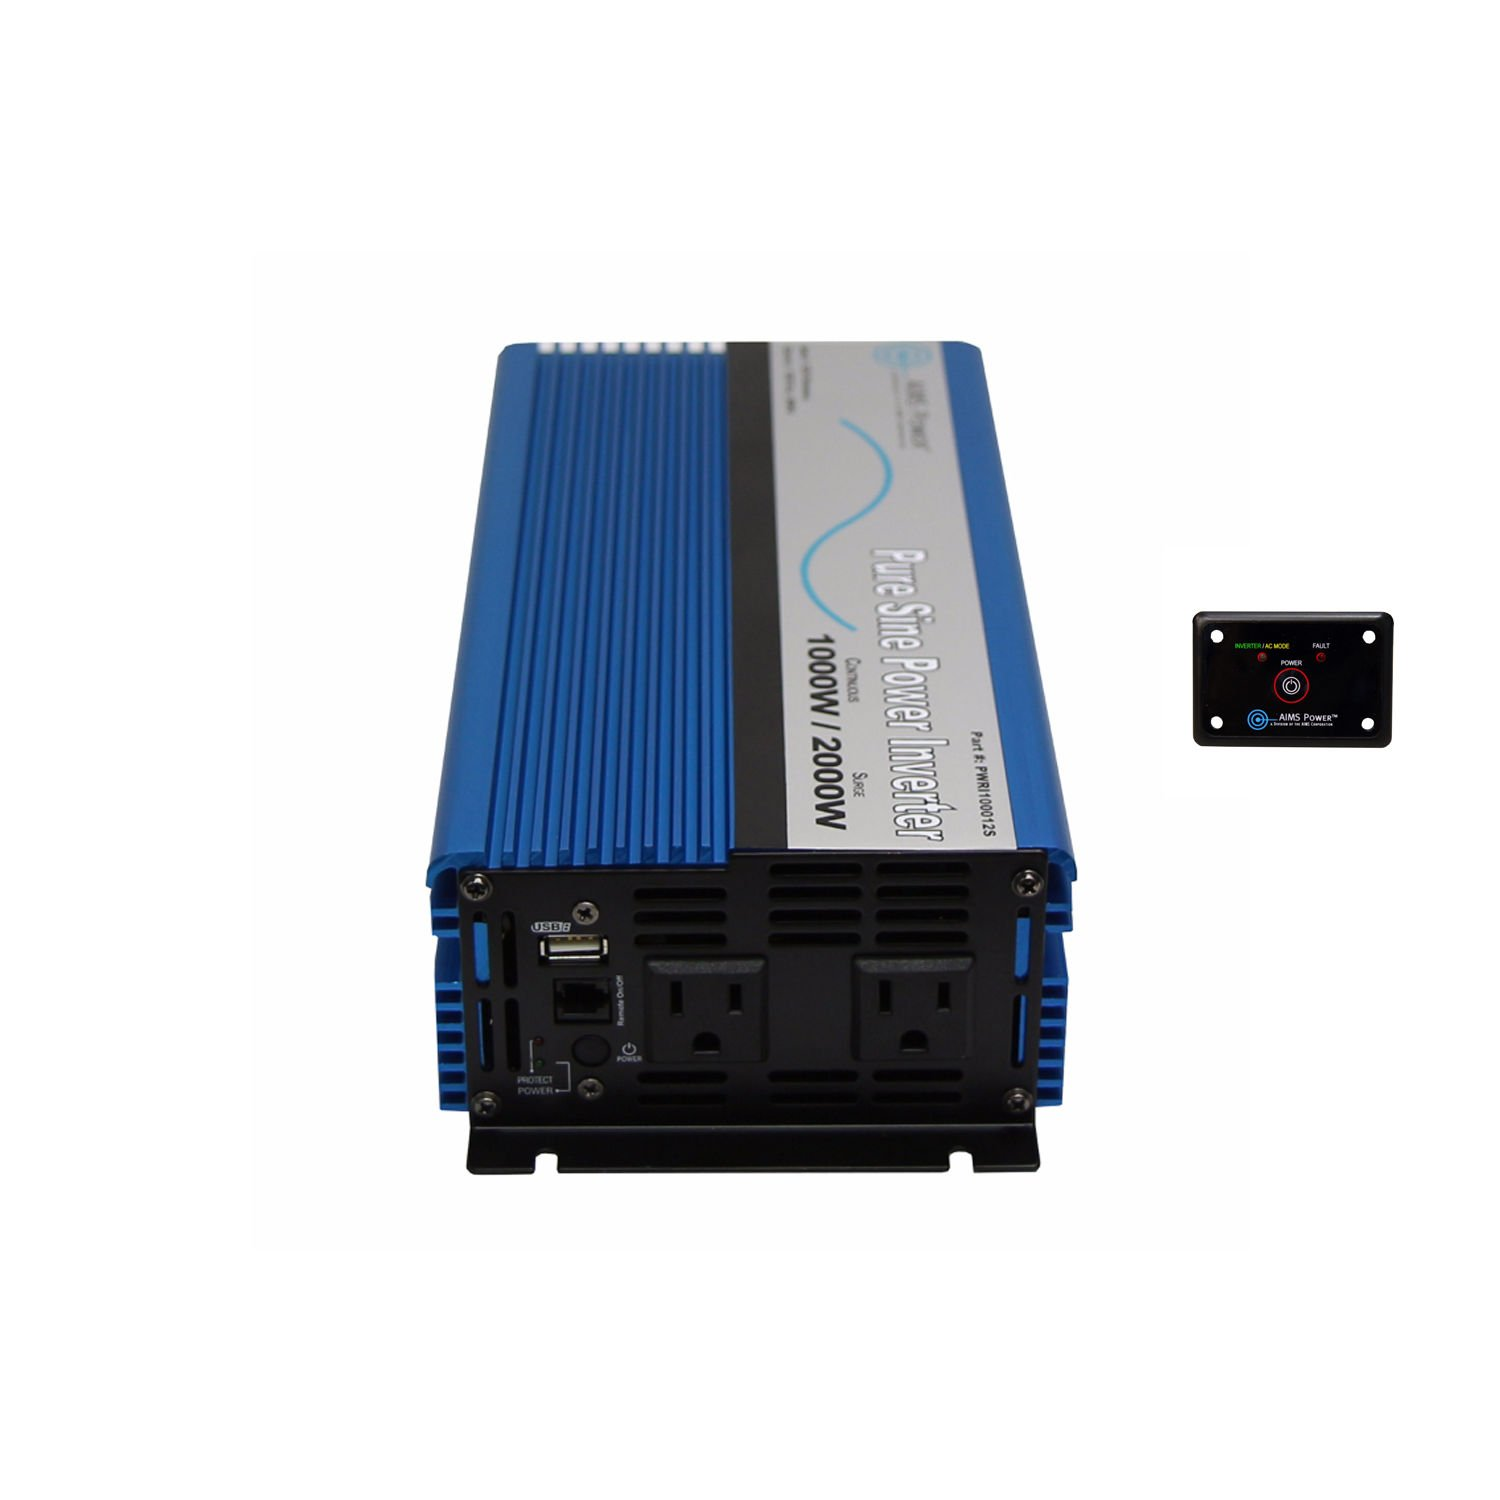 AIMS Power PWRI100012120S-REMOTE 1000-Watt 12V Pure Sine Wave Power Inverter with Remote Switch, 1000W Continuous Power, 2000W Surge Peak Power, USB Port, Dual AC Receptacles, On/off Switch